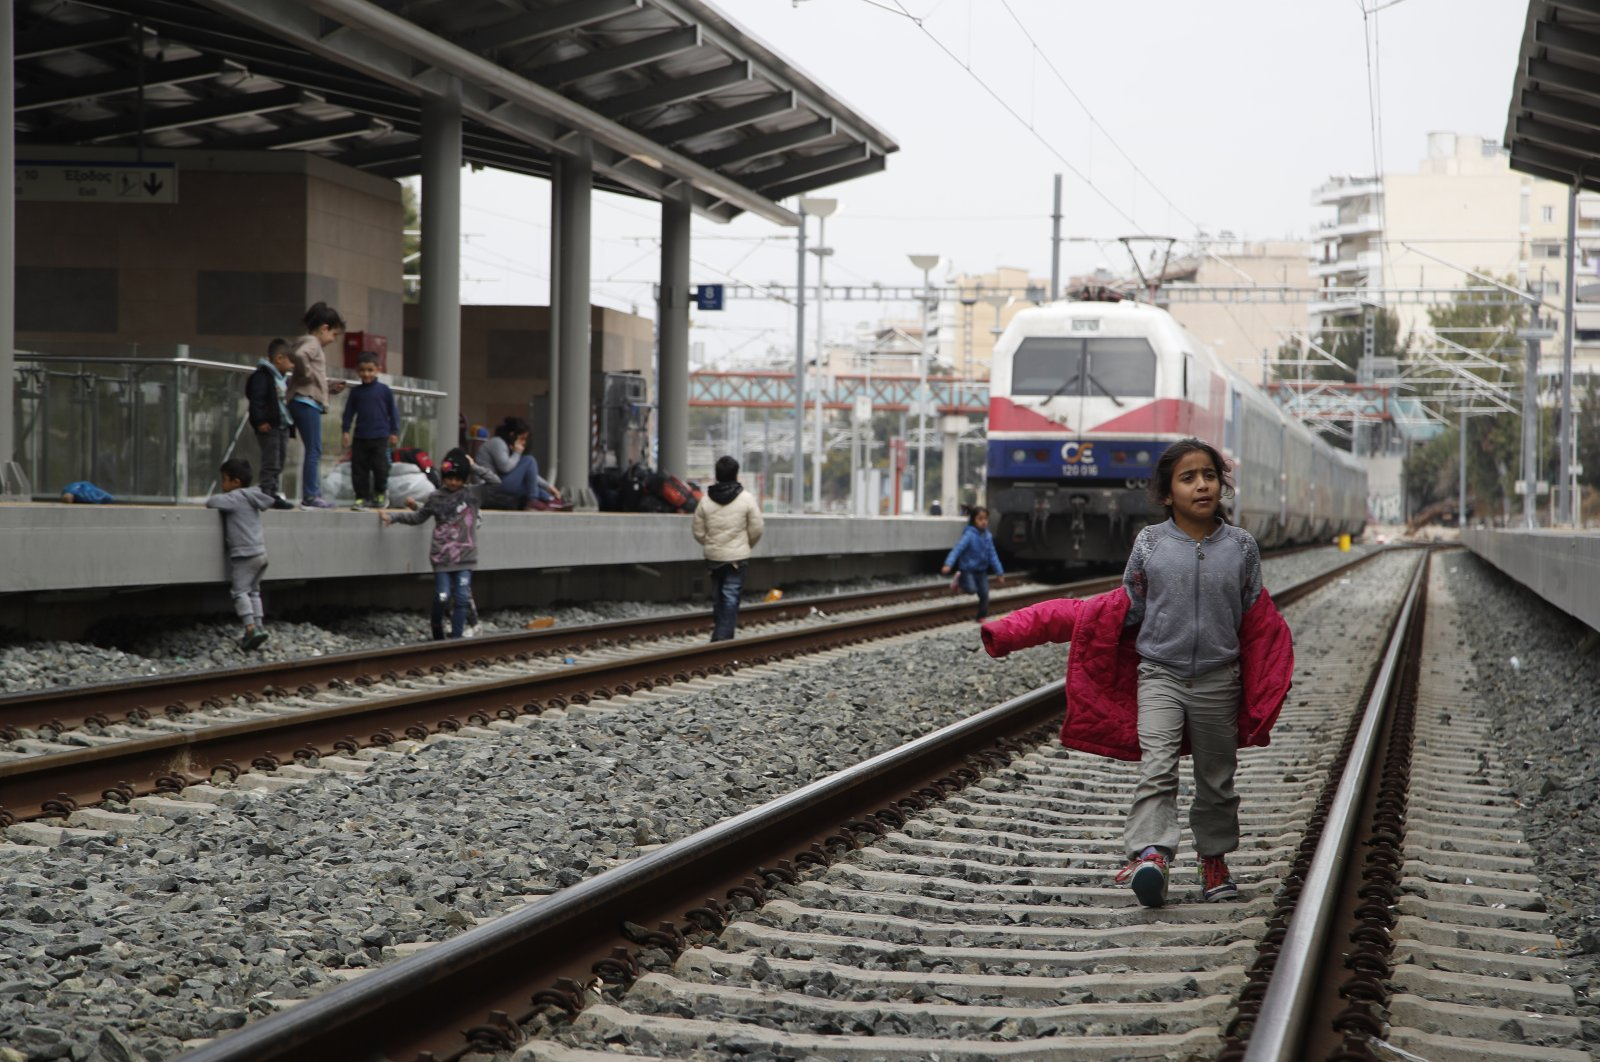 A migrant boy walks on a rail track at the Larissis Station in Athens, Greece, April 5, 2019. (AP Photo)